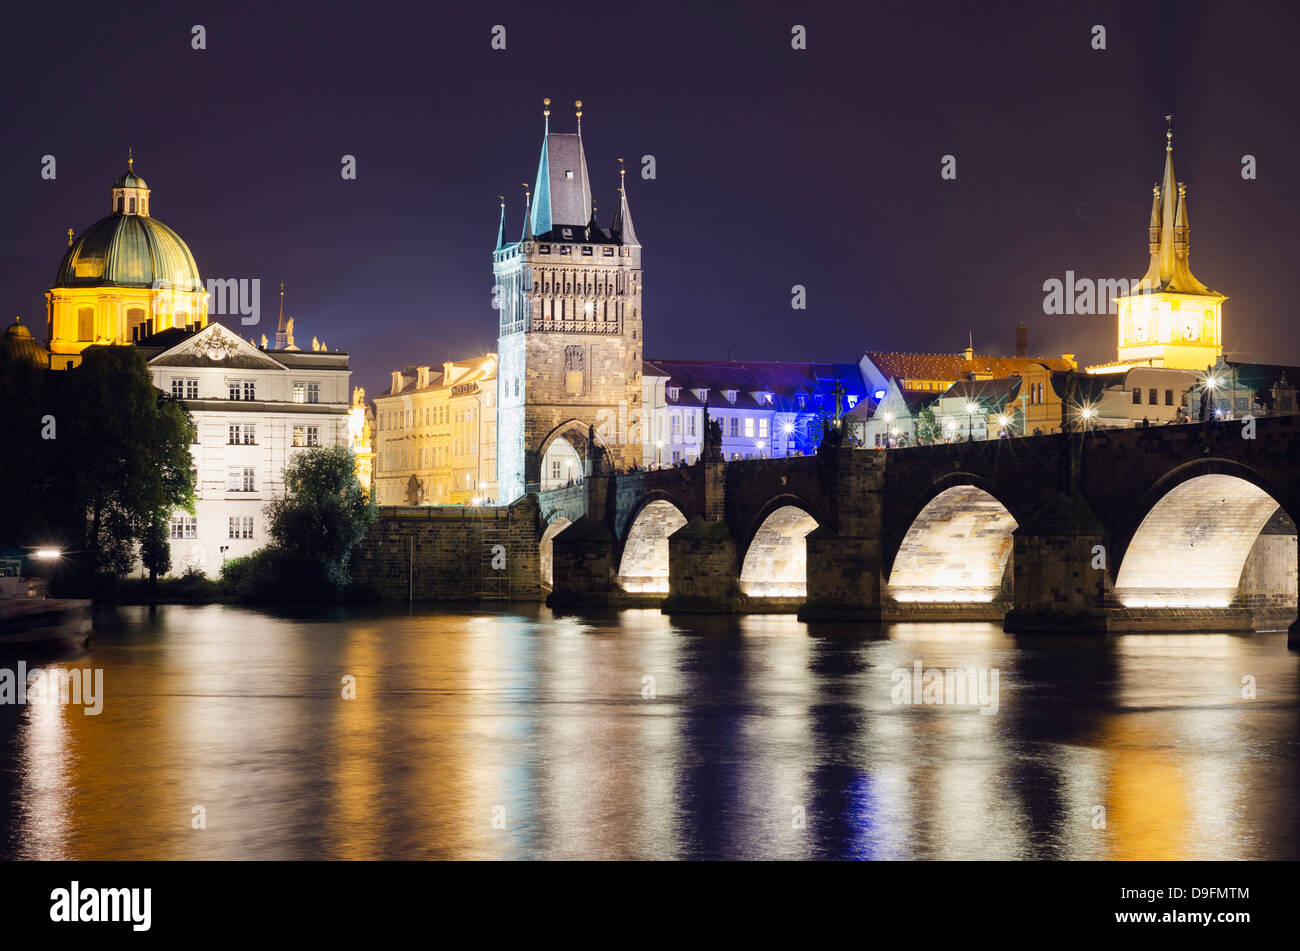 Charles Bridge and Mala Strana Bridge Tower, UNESCO World Heritage Site, Prague, Czech Republic - Stock Image